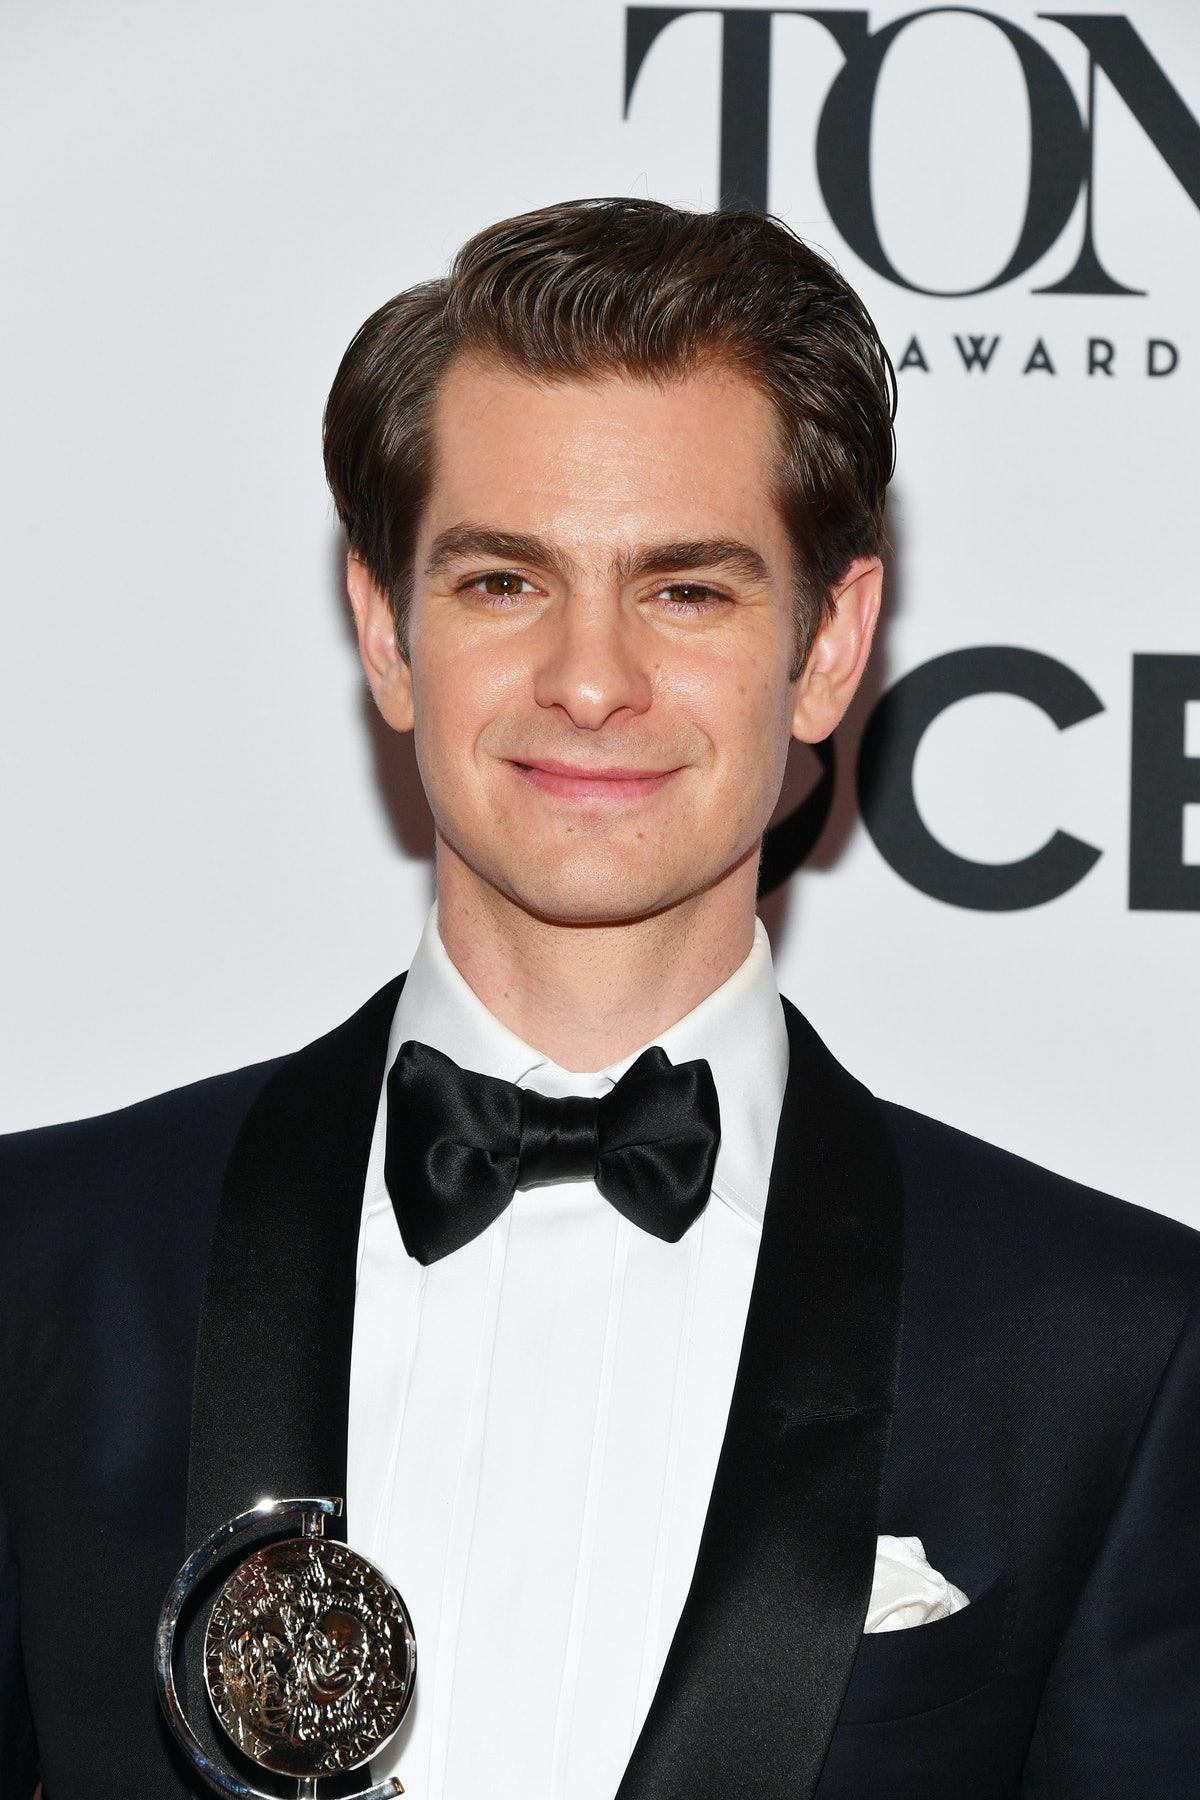 Are Andrew Garfield & Susie Abromeit Dating? They've Apparently Been Inseparable Lately